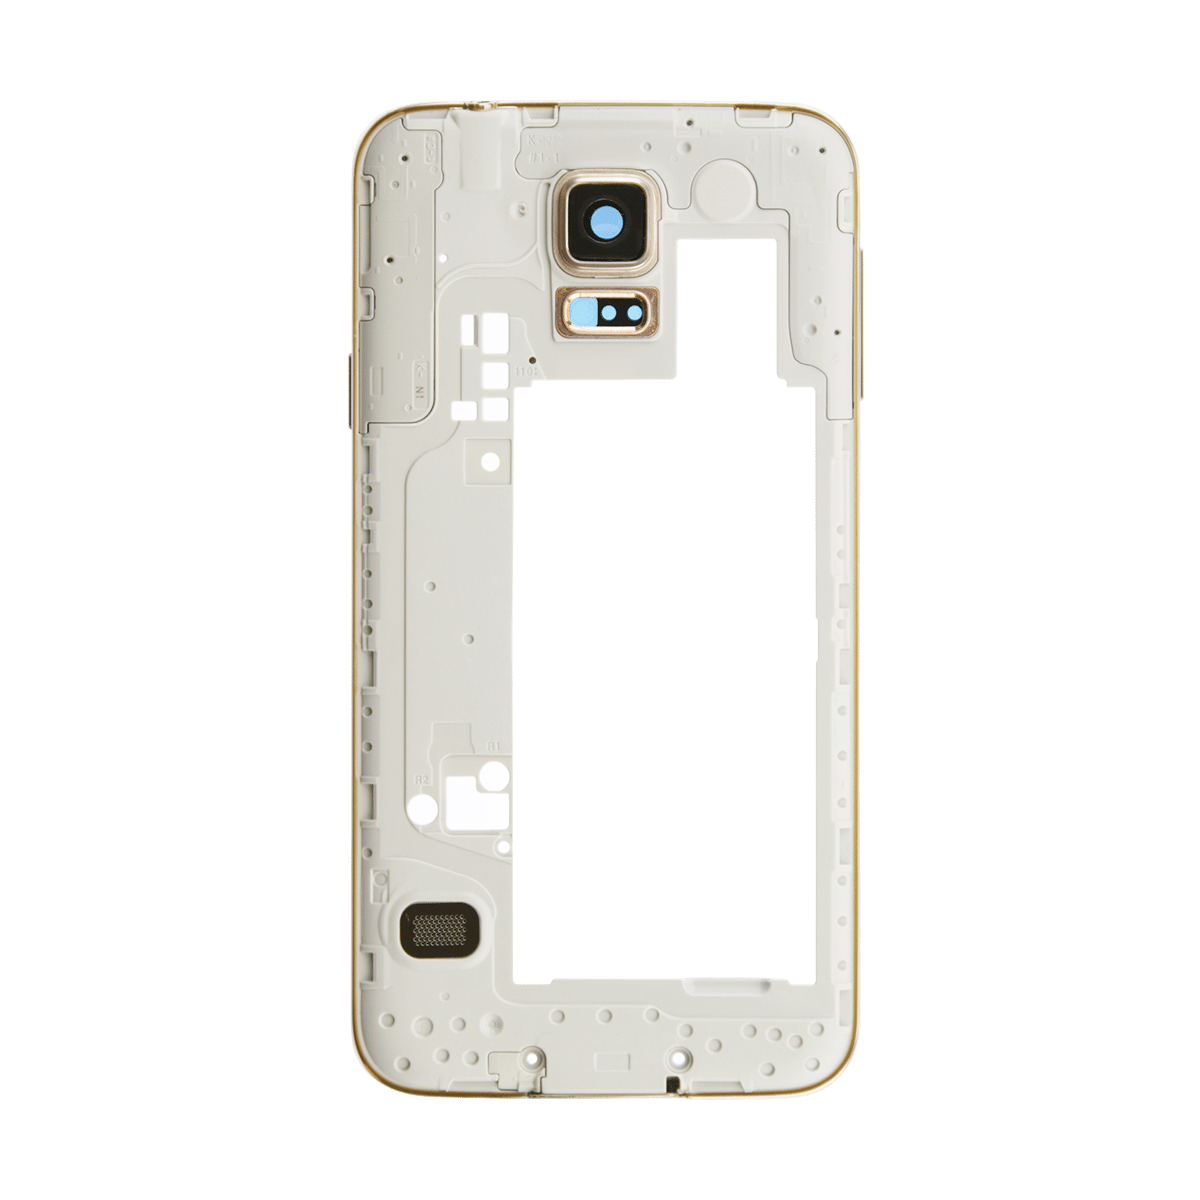 Samsung Galaxy S5 Rear Housing with Small Parts Replacement